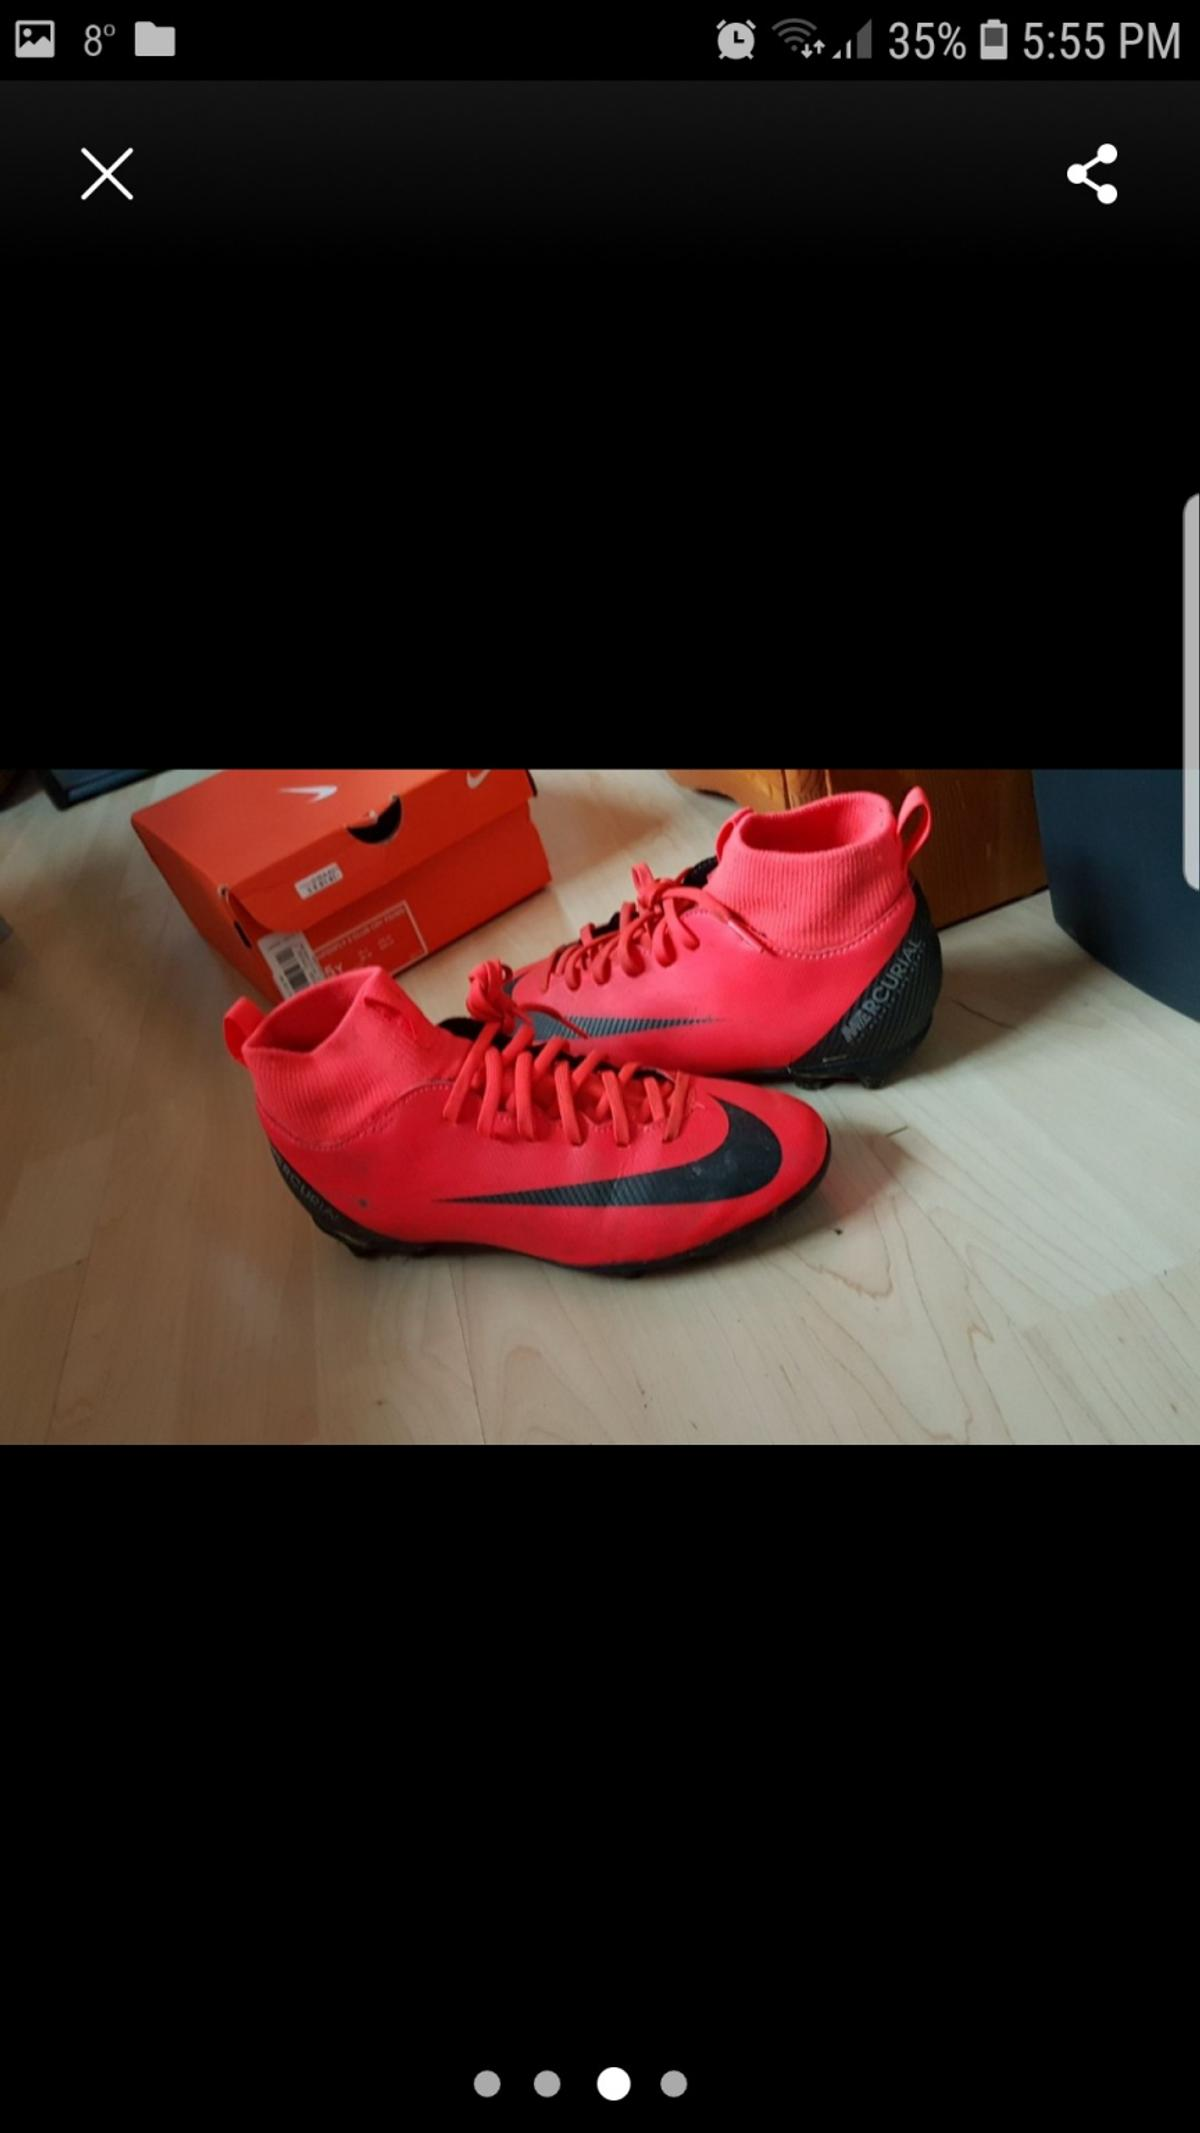 Nike Superfly Club 6 CR7 TF Football Shoes For Men .